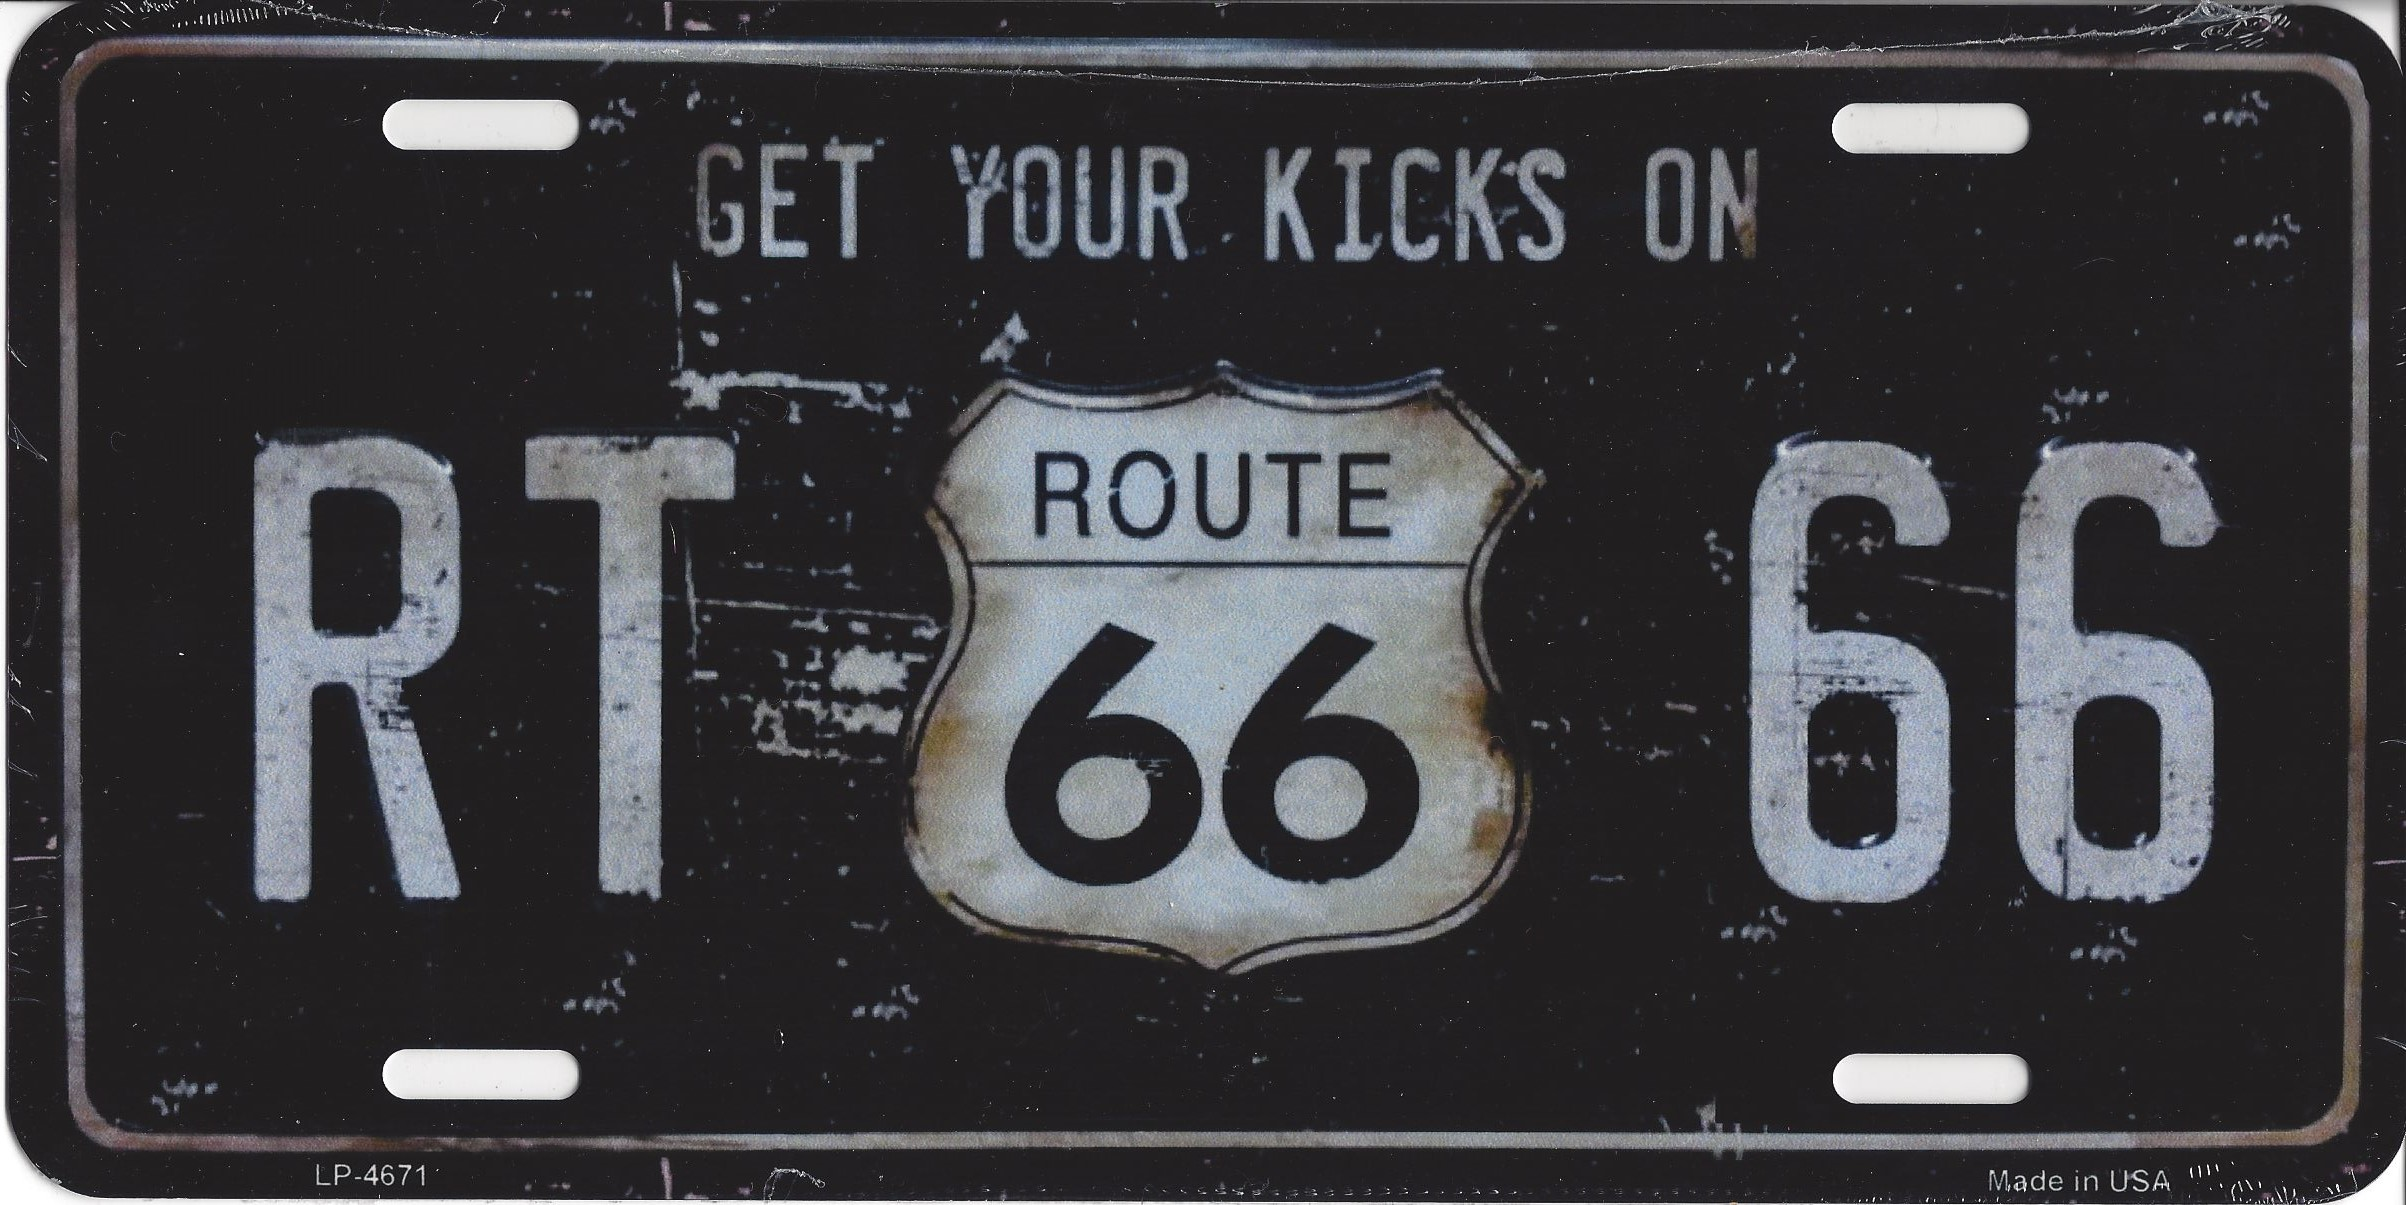 ROUTE 66 RT 66 License Plate